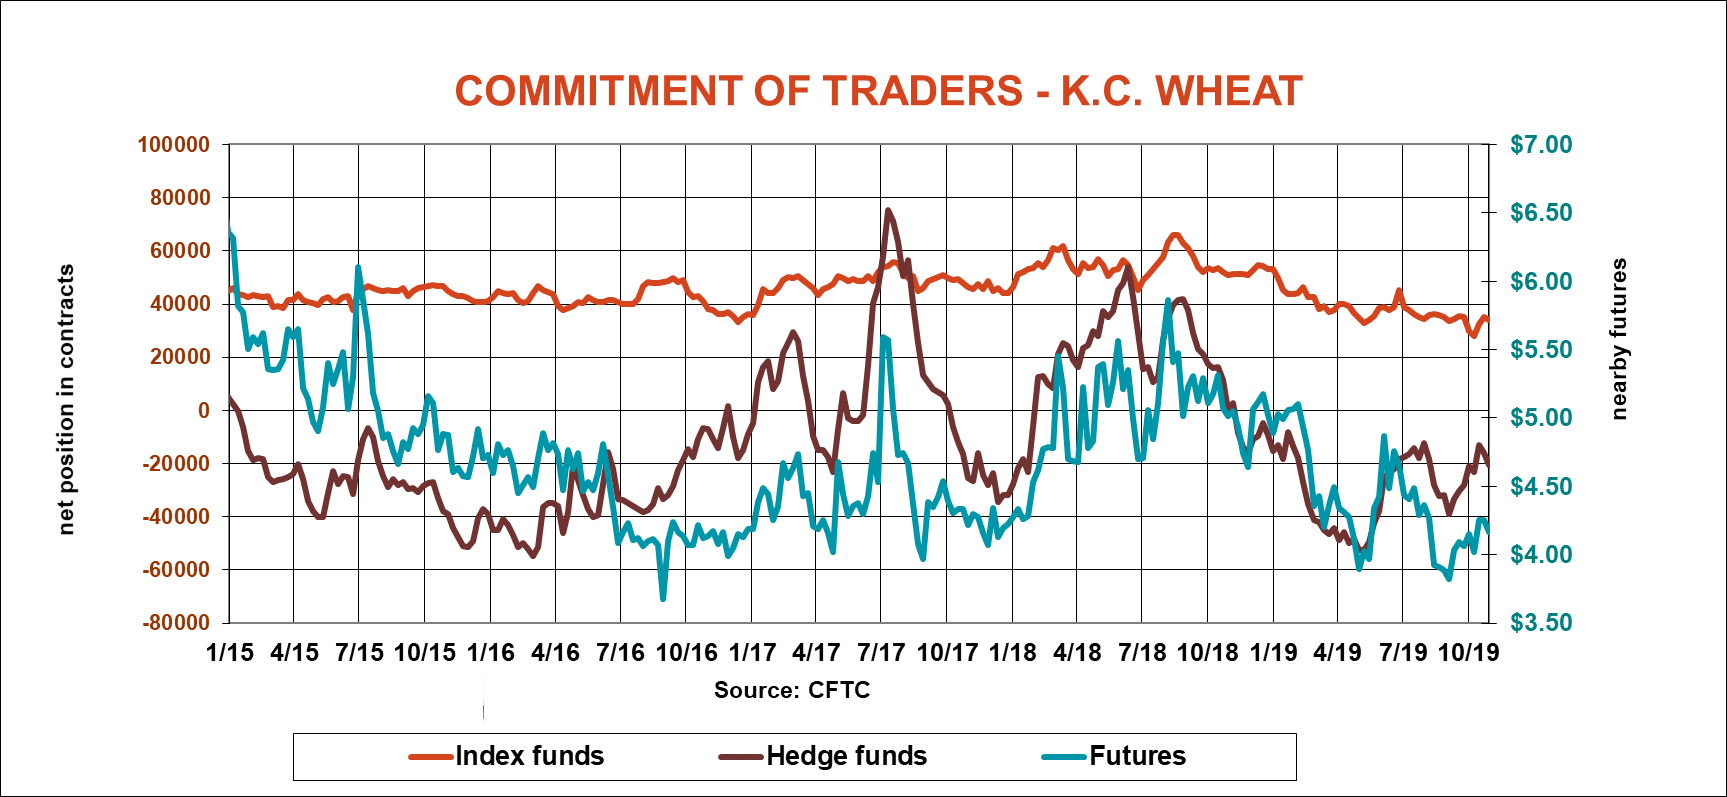 commitment-of-traders-kansas-city-wheat-cftc-110119.png